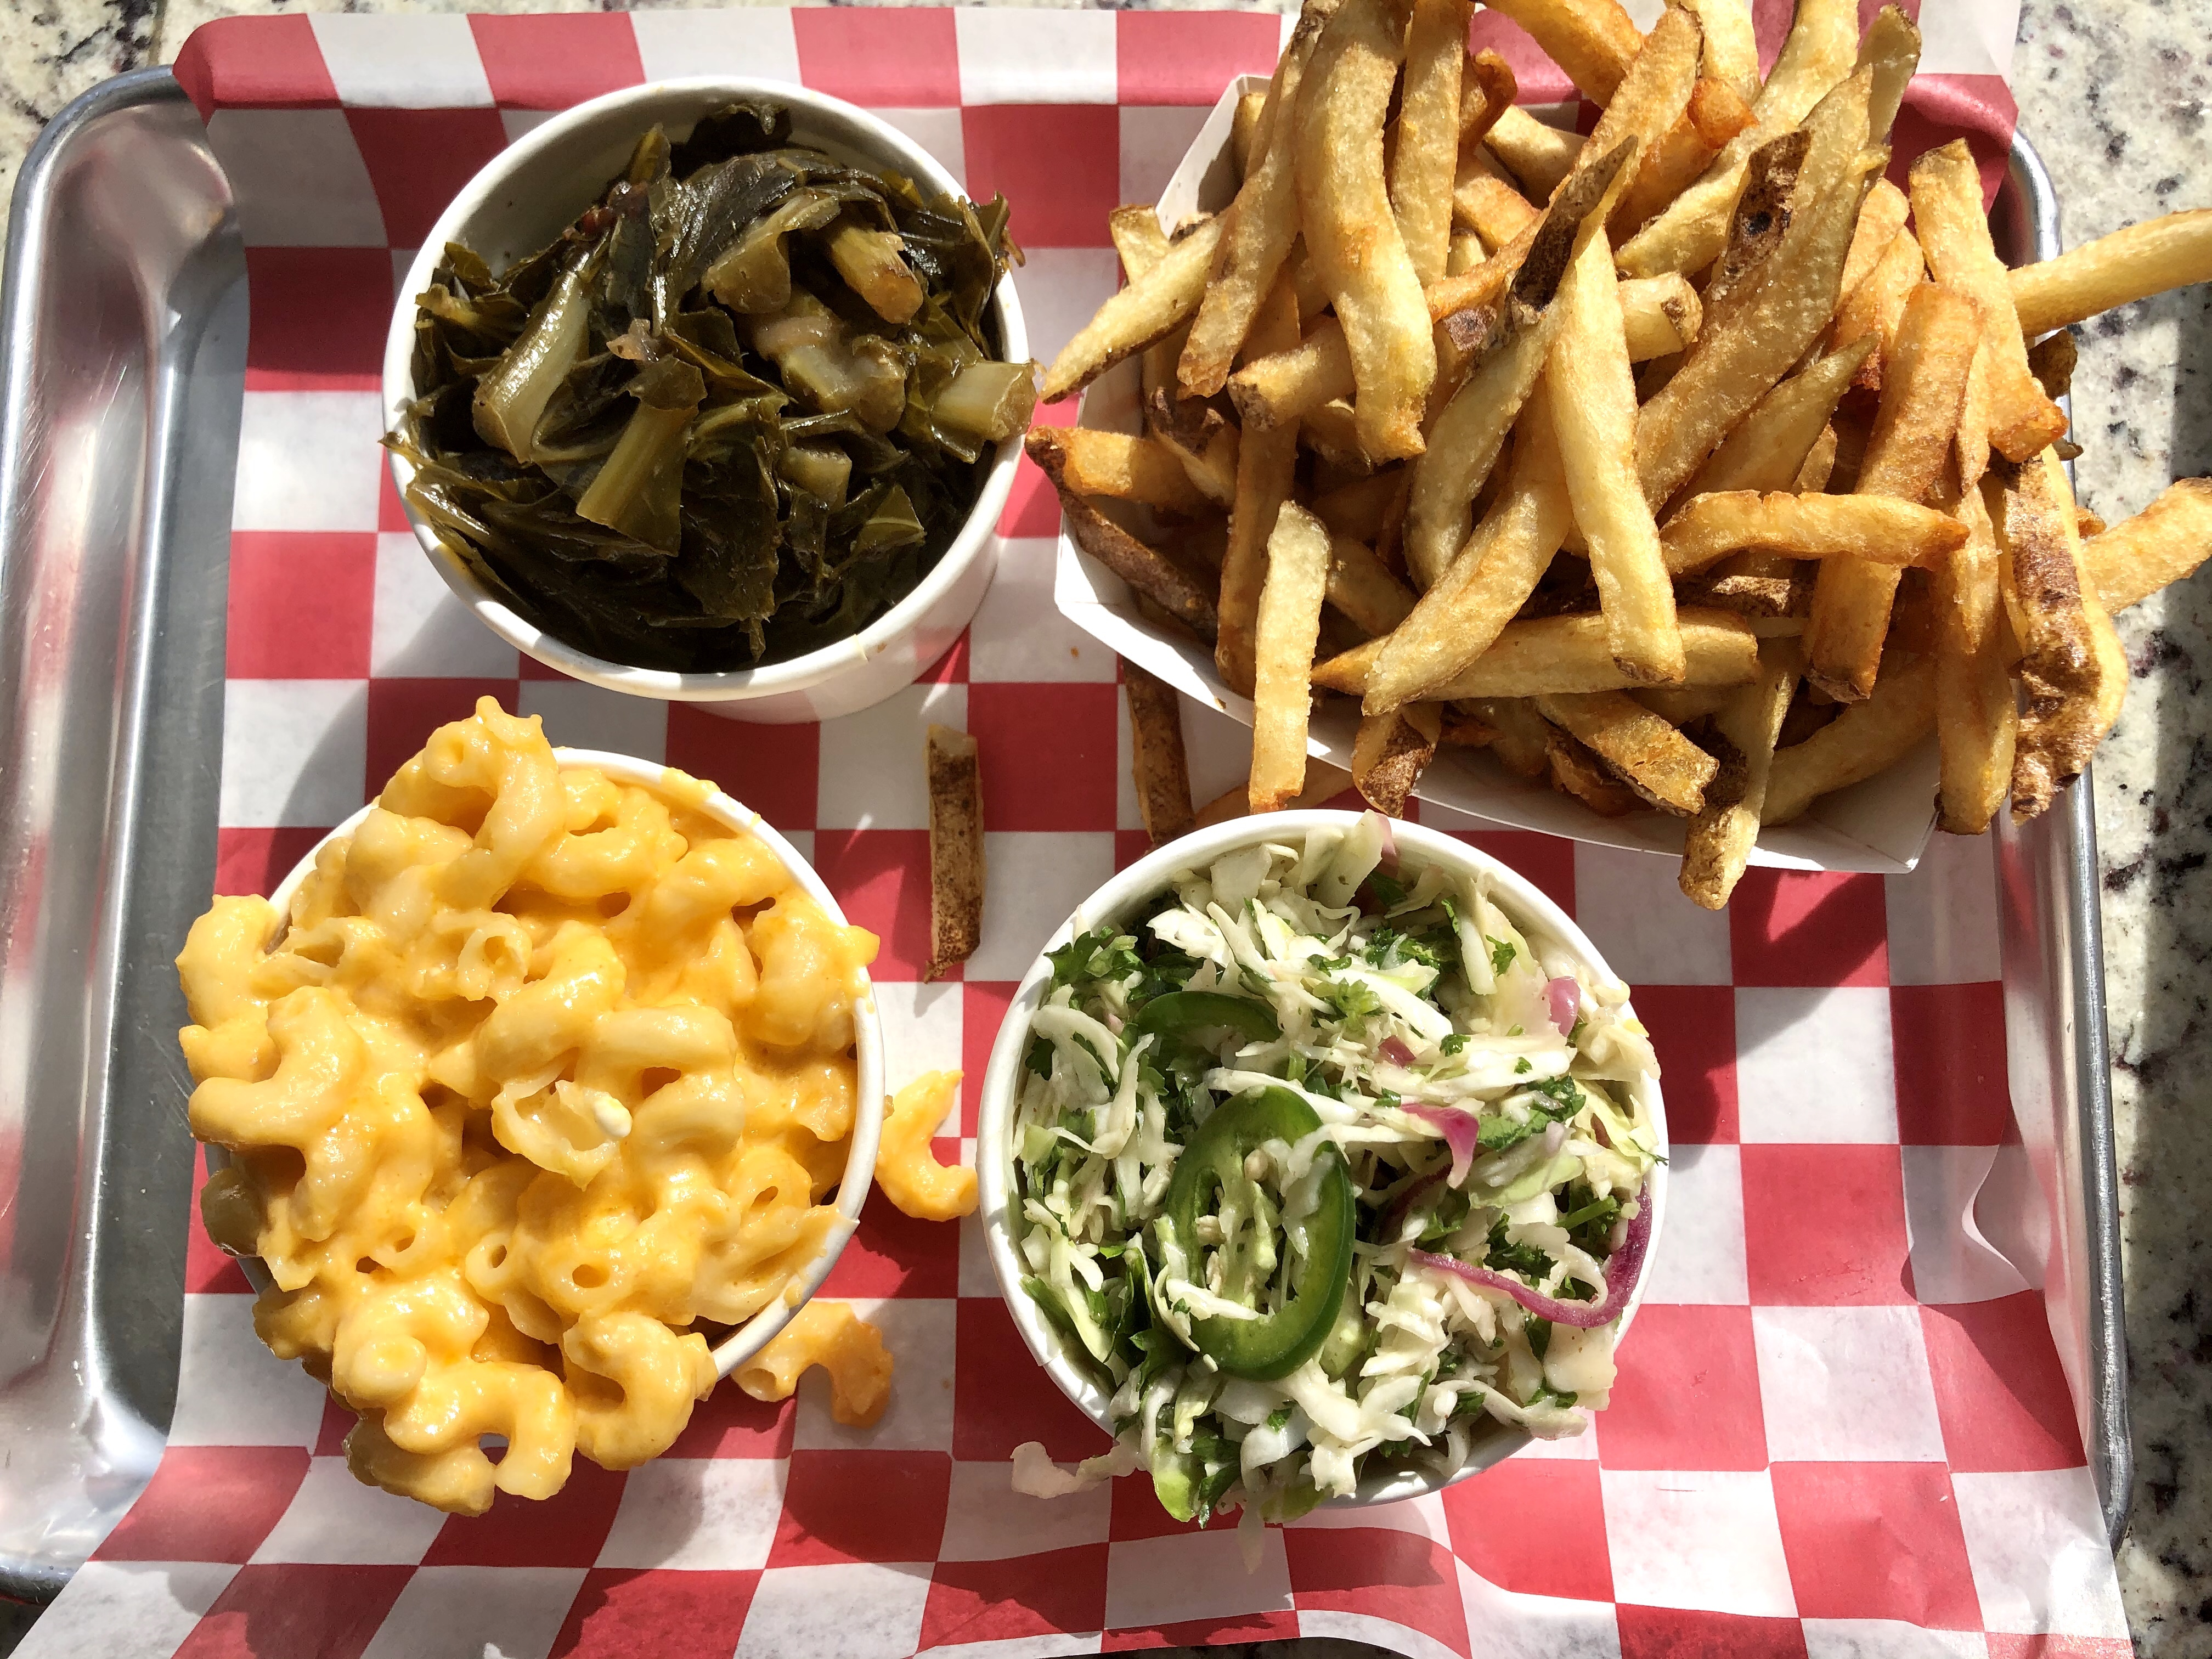 Dish sides in different cups: collard greens, fries, macaroni and cheese, and coleslaw